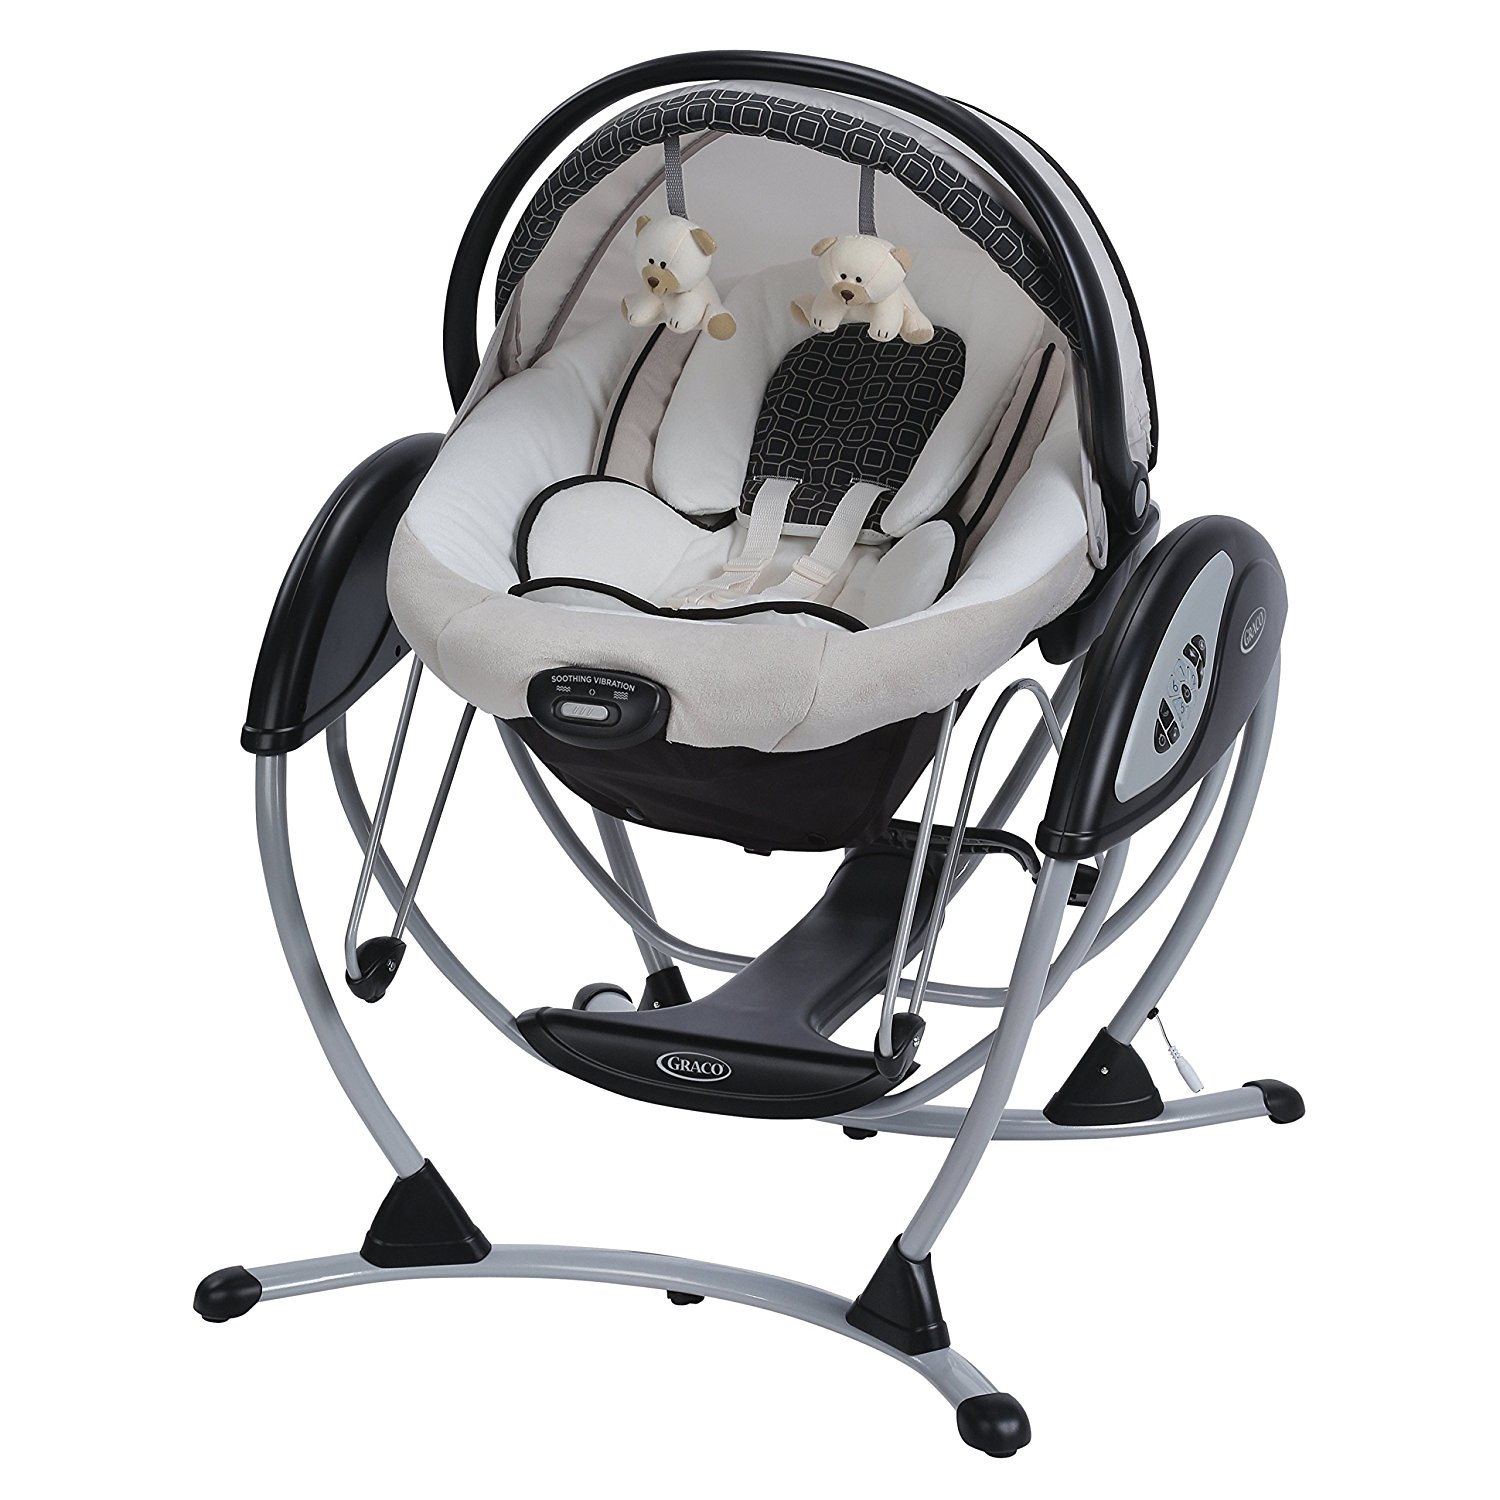 graco glider elite baby swing, best baby swing